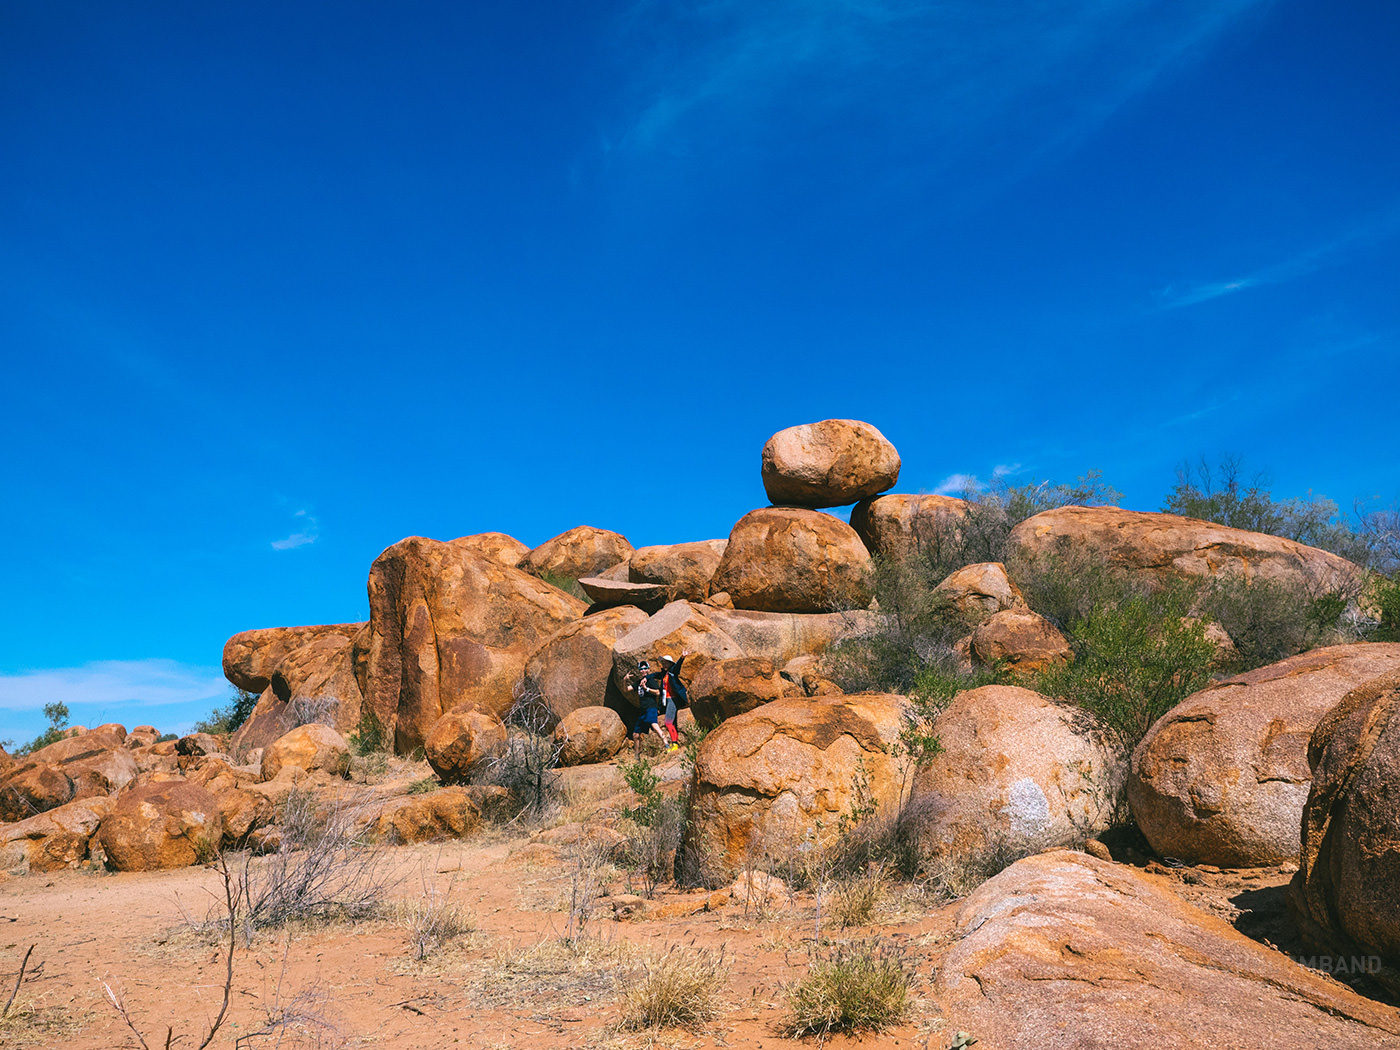 NT Australia - Karlu Karlu - E & A with the tipping pebble